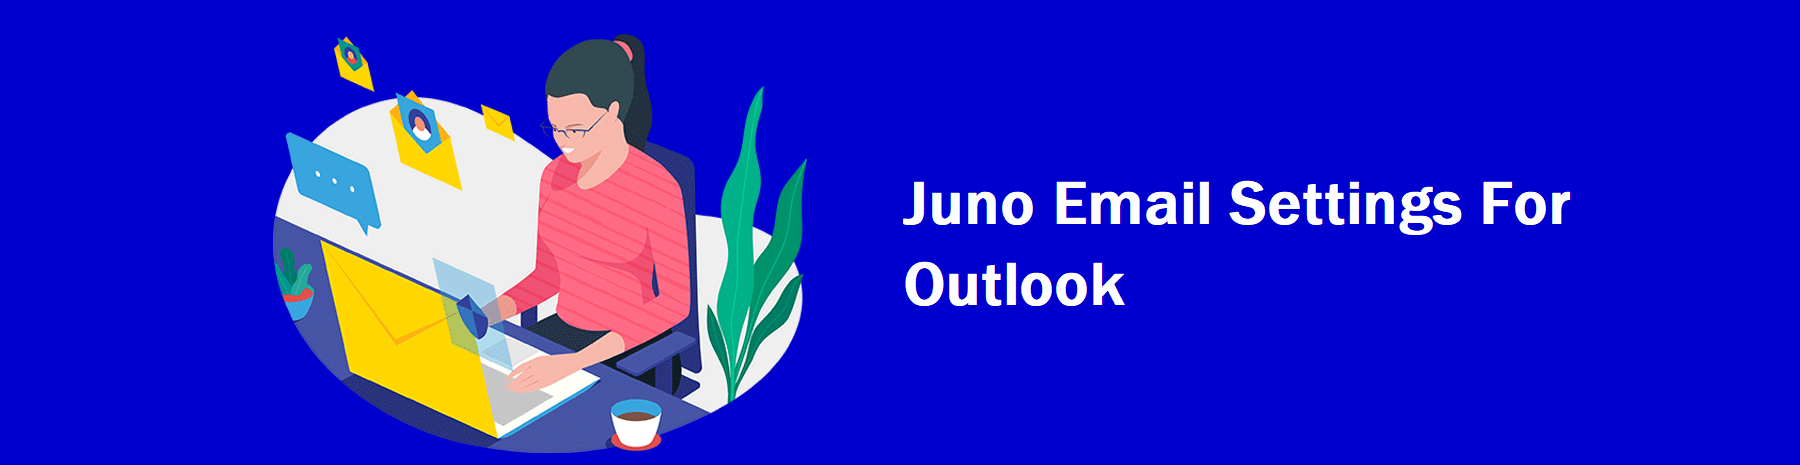 Juno Email Settings For Outlook,